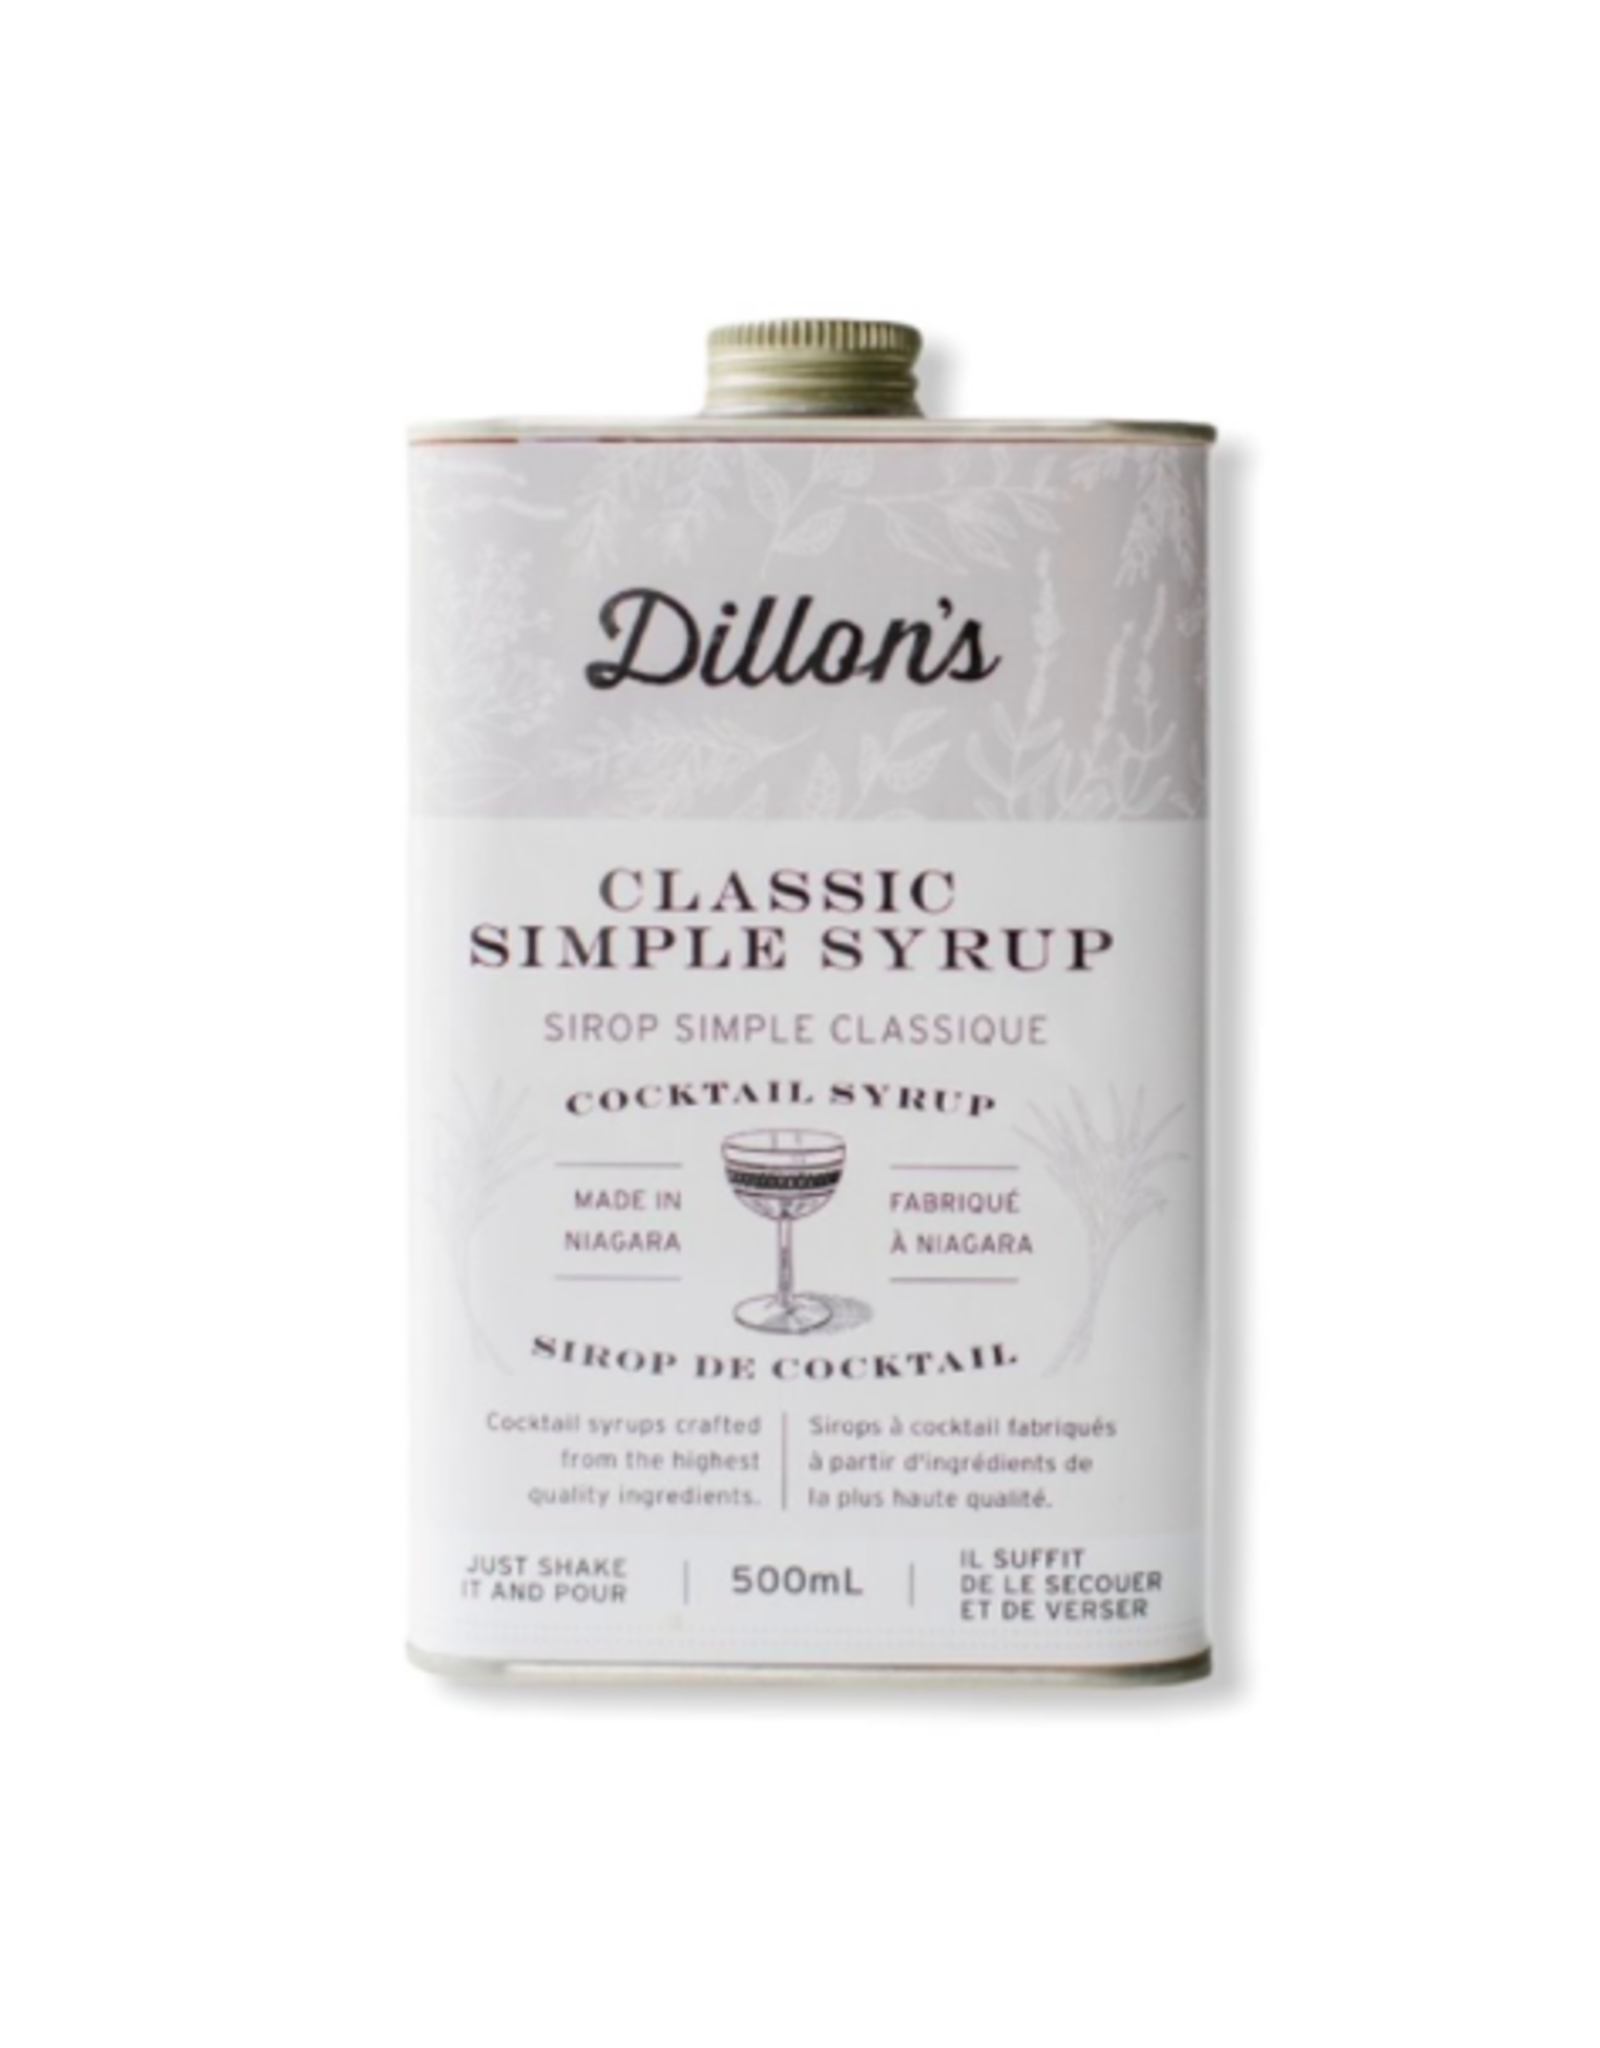 Dillon's - Classic Simple Syrup, 500ml